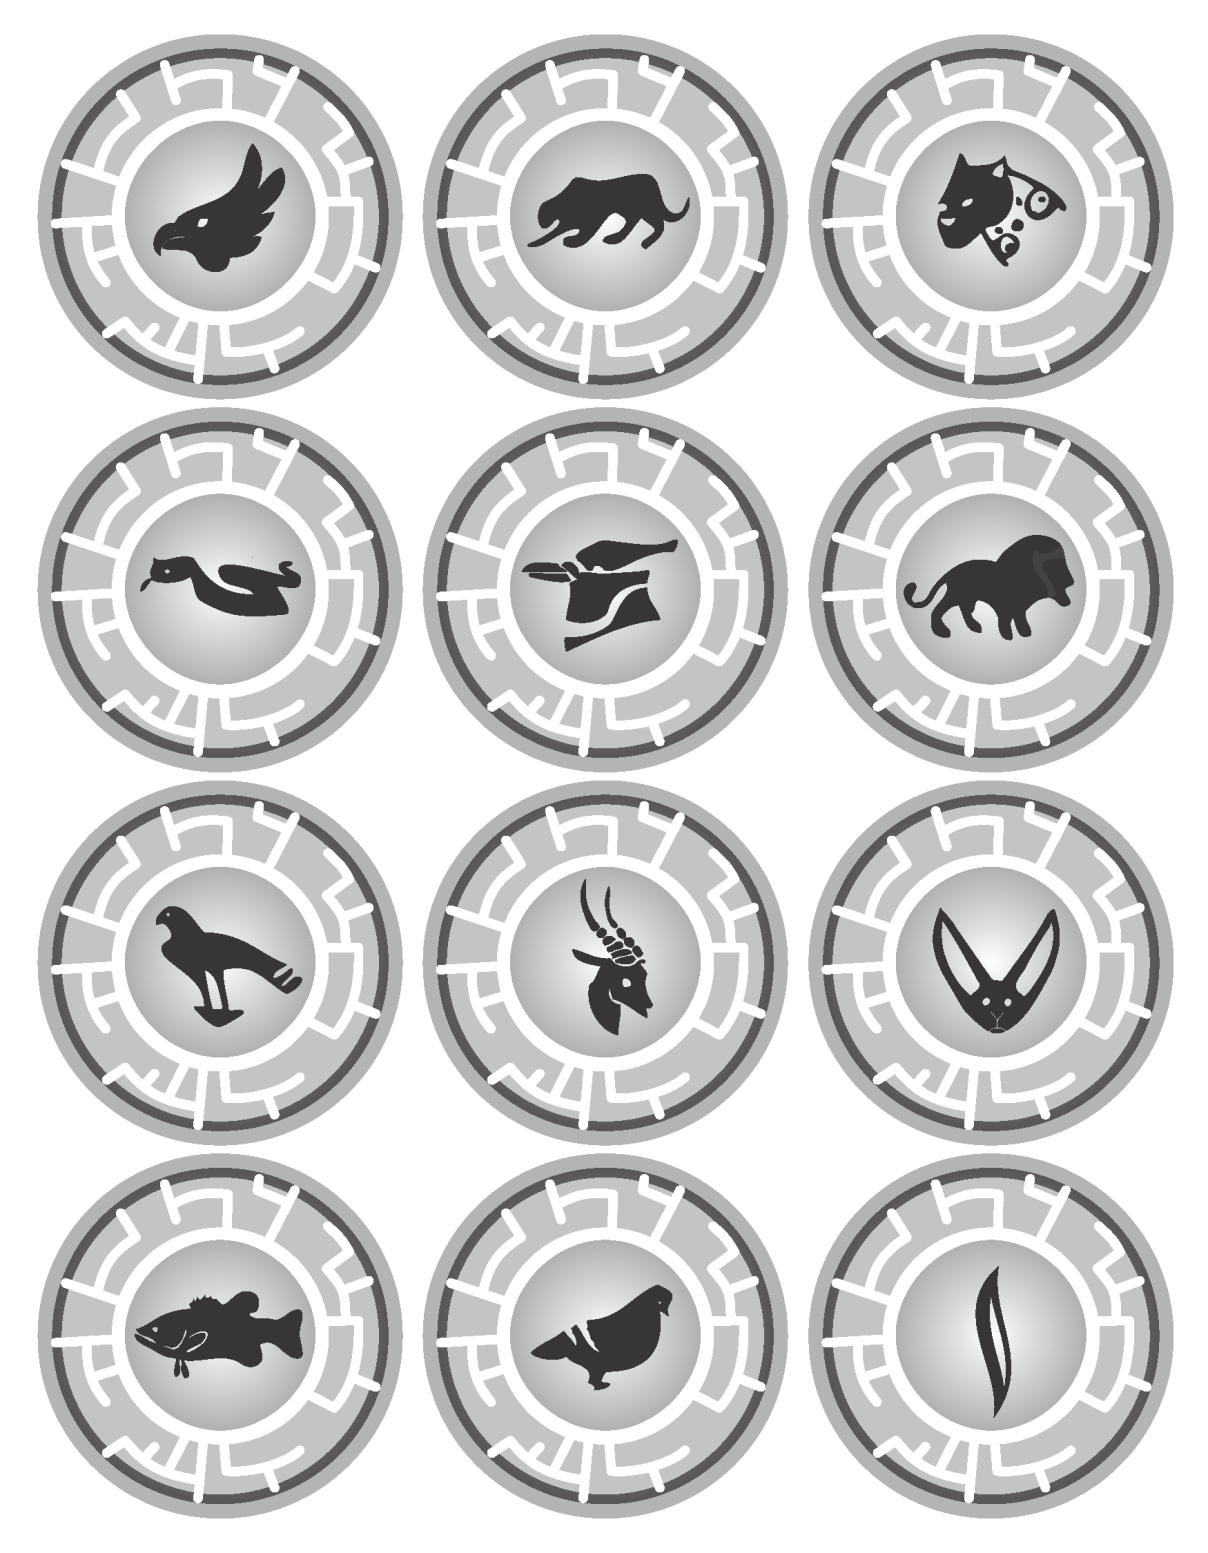 photo regarding Creature Power Discs Printable identify Heres a PDF of some of the Creature Energy Discs Ive designed